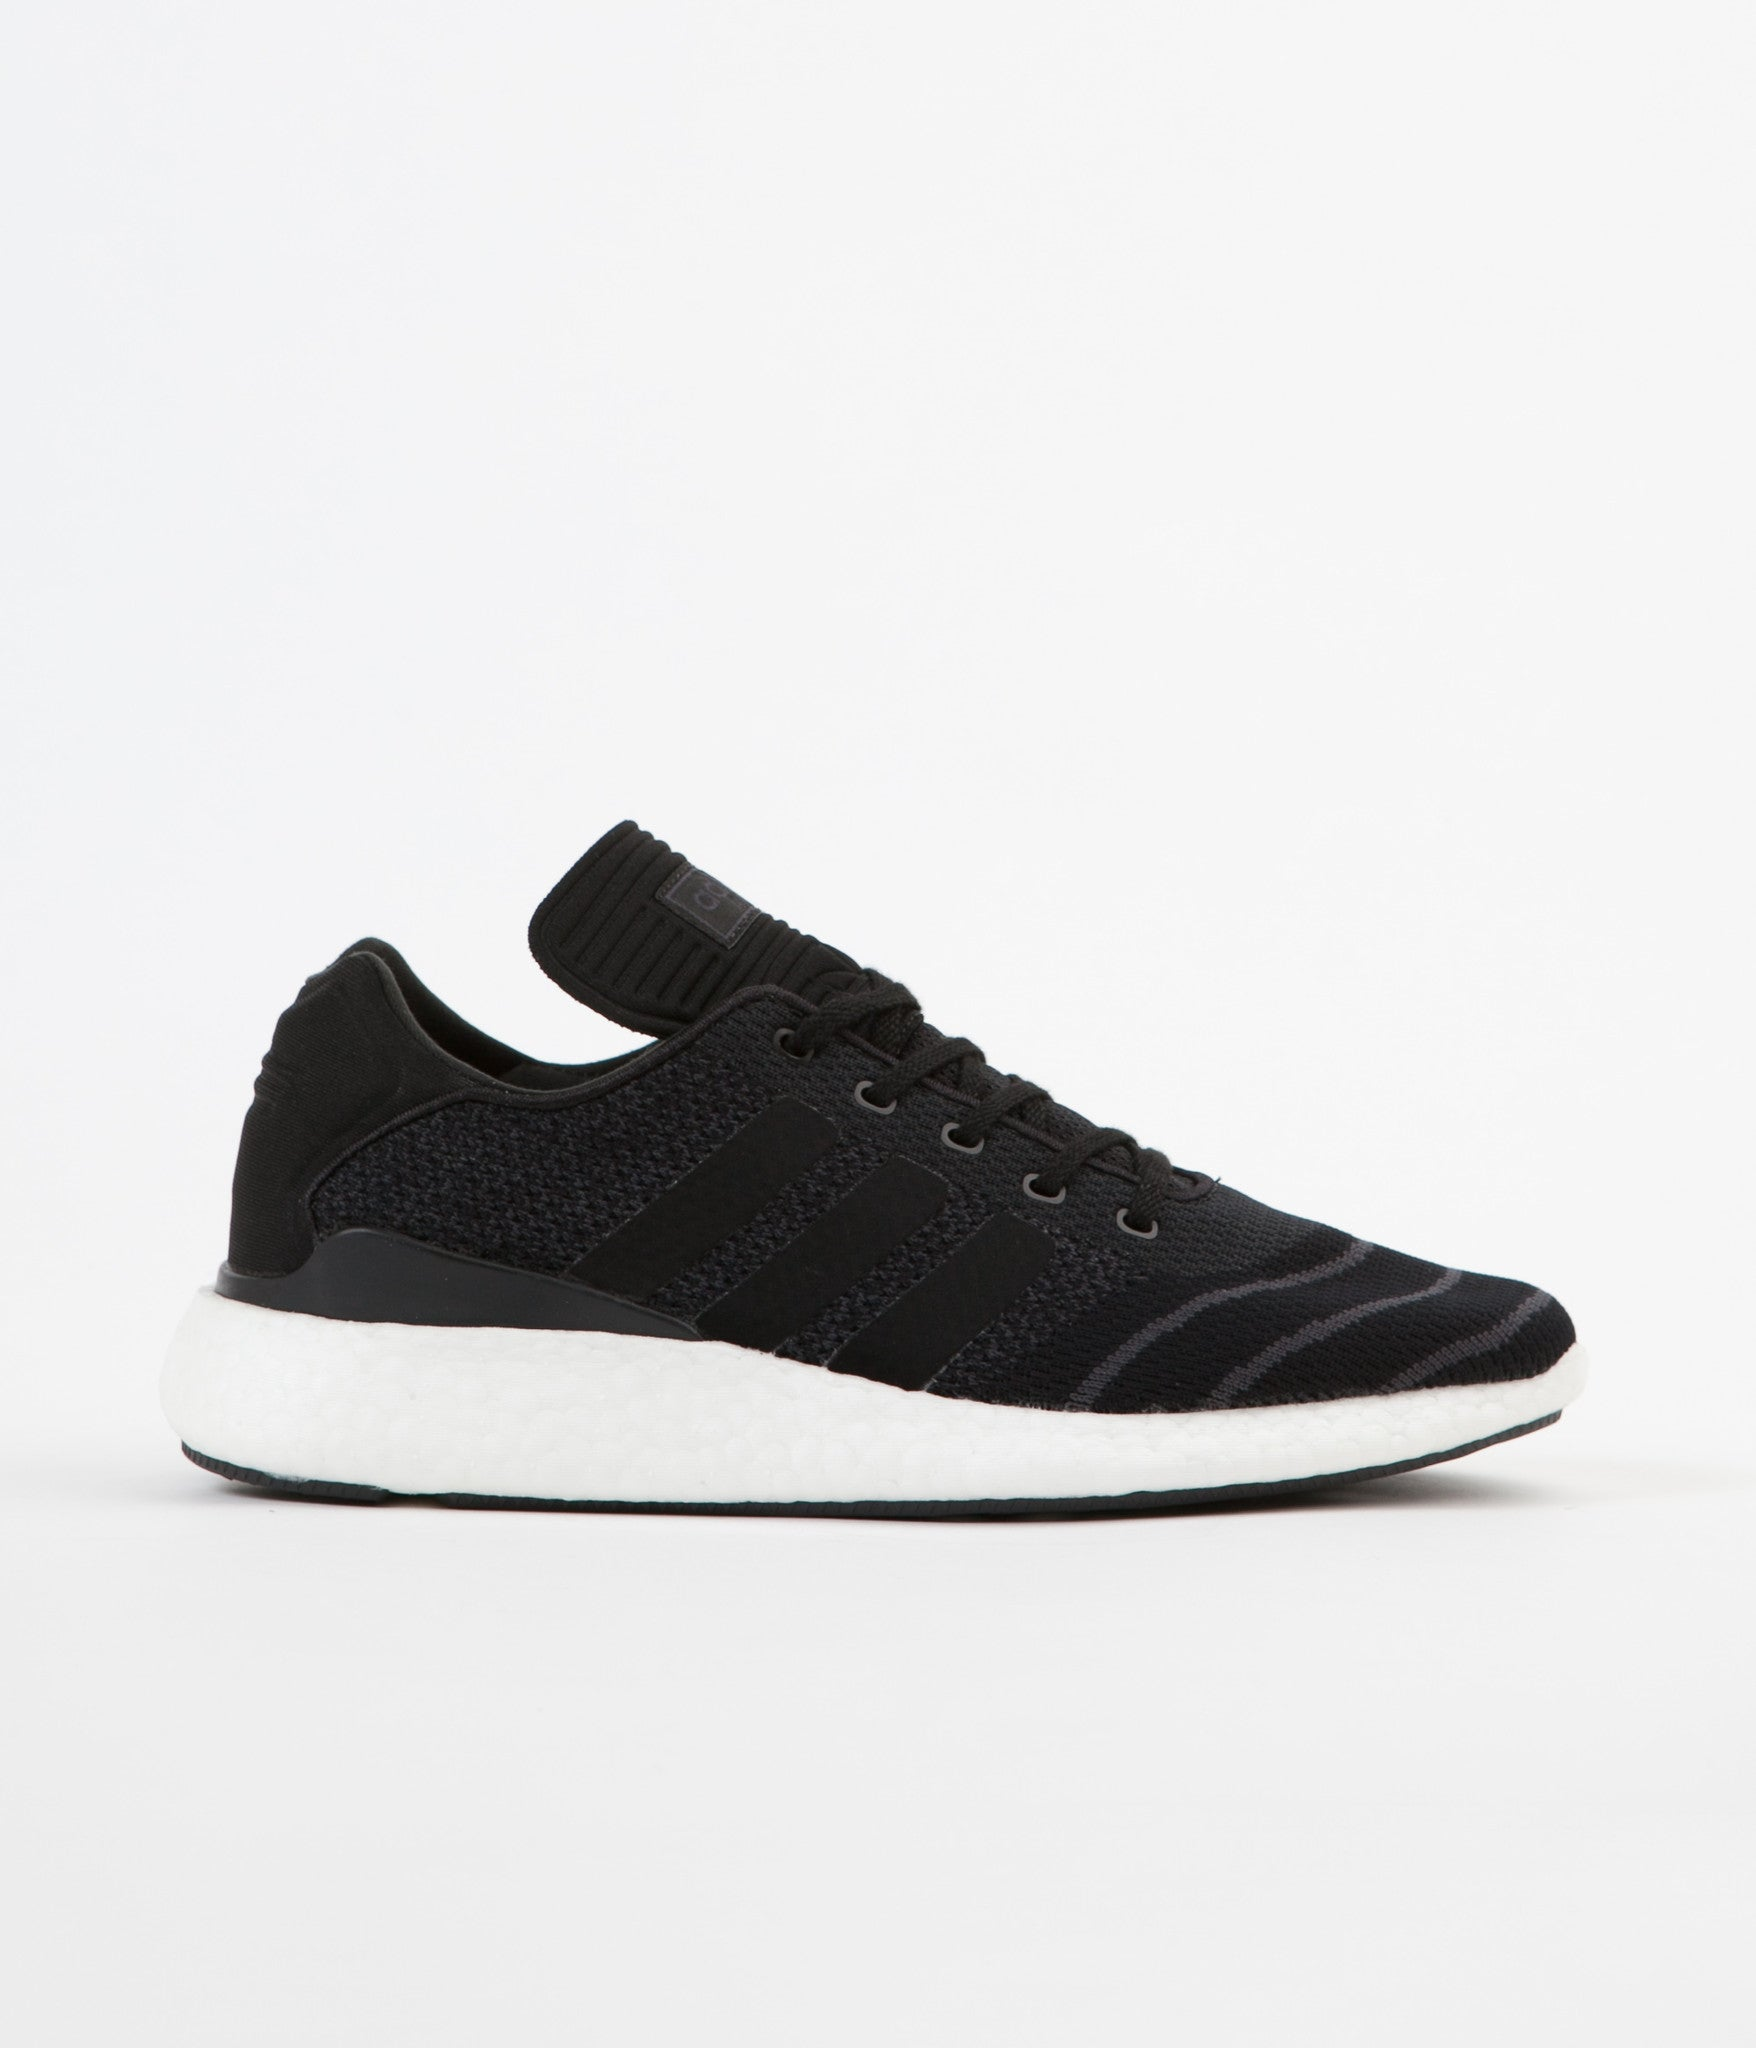 Adidas Busenitz Pure Boost Shoes - Core Black / Core Black / White